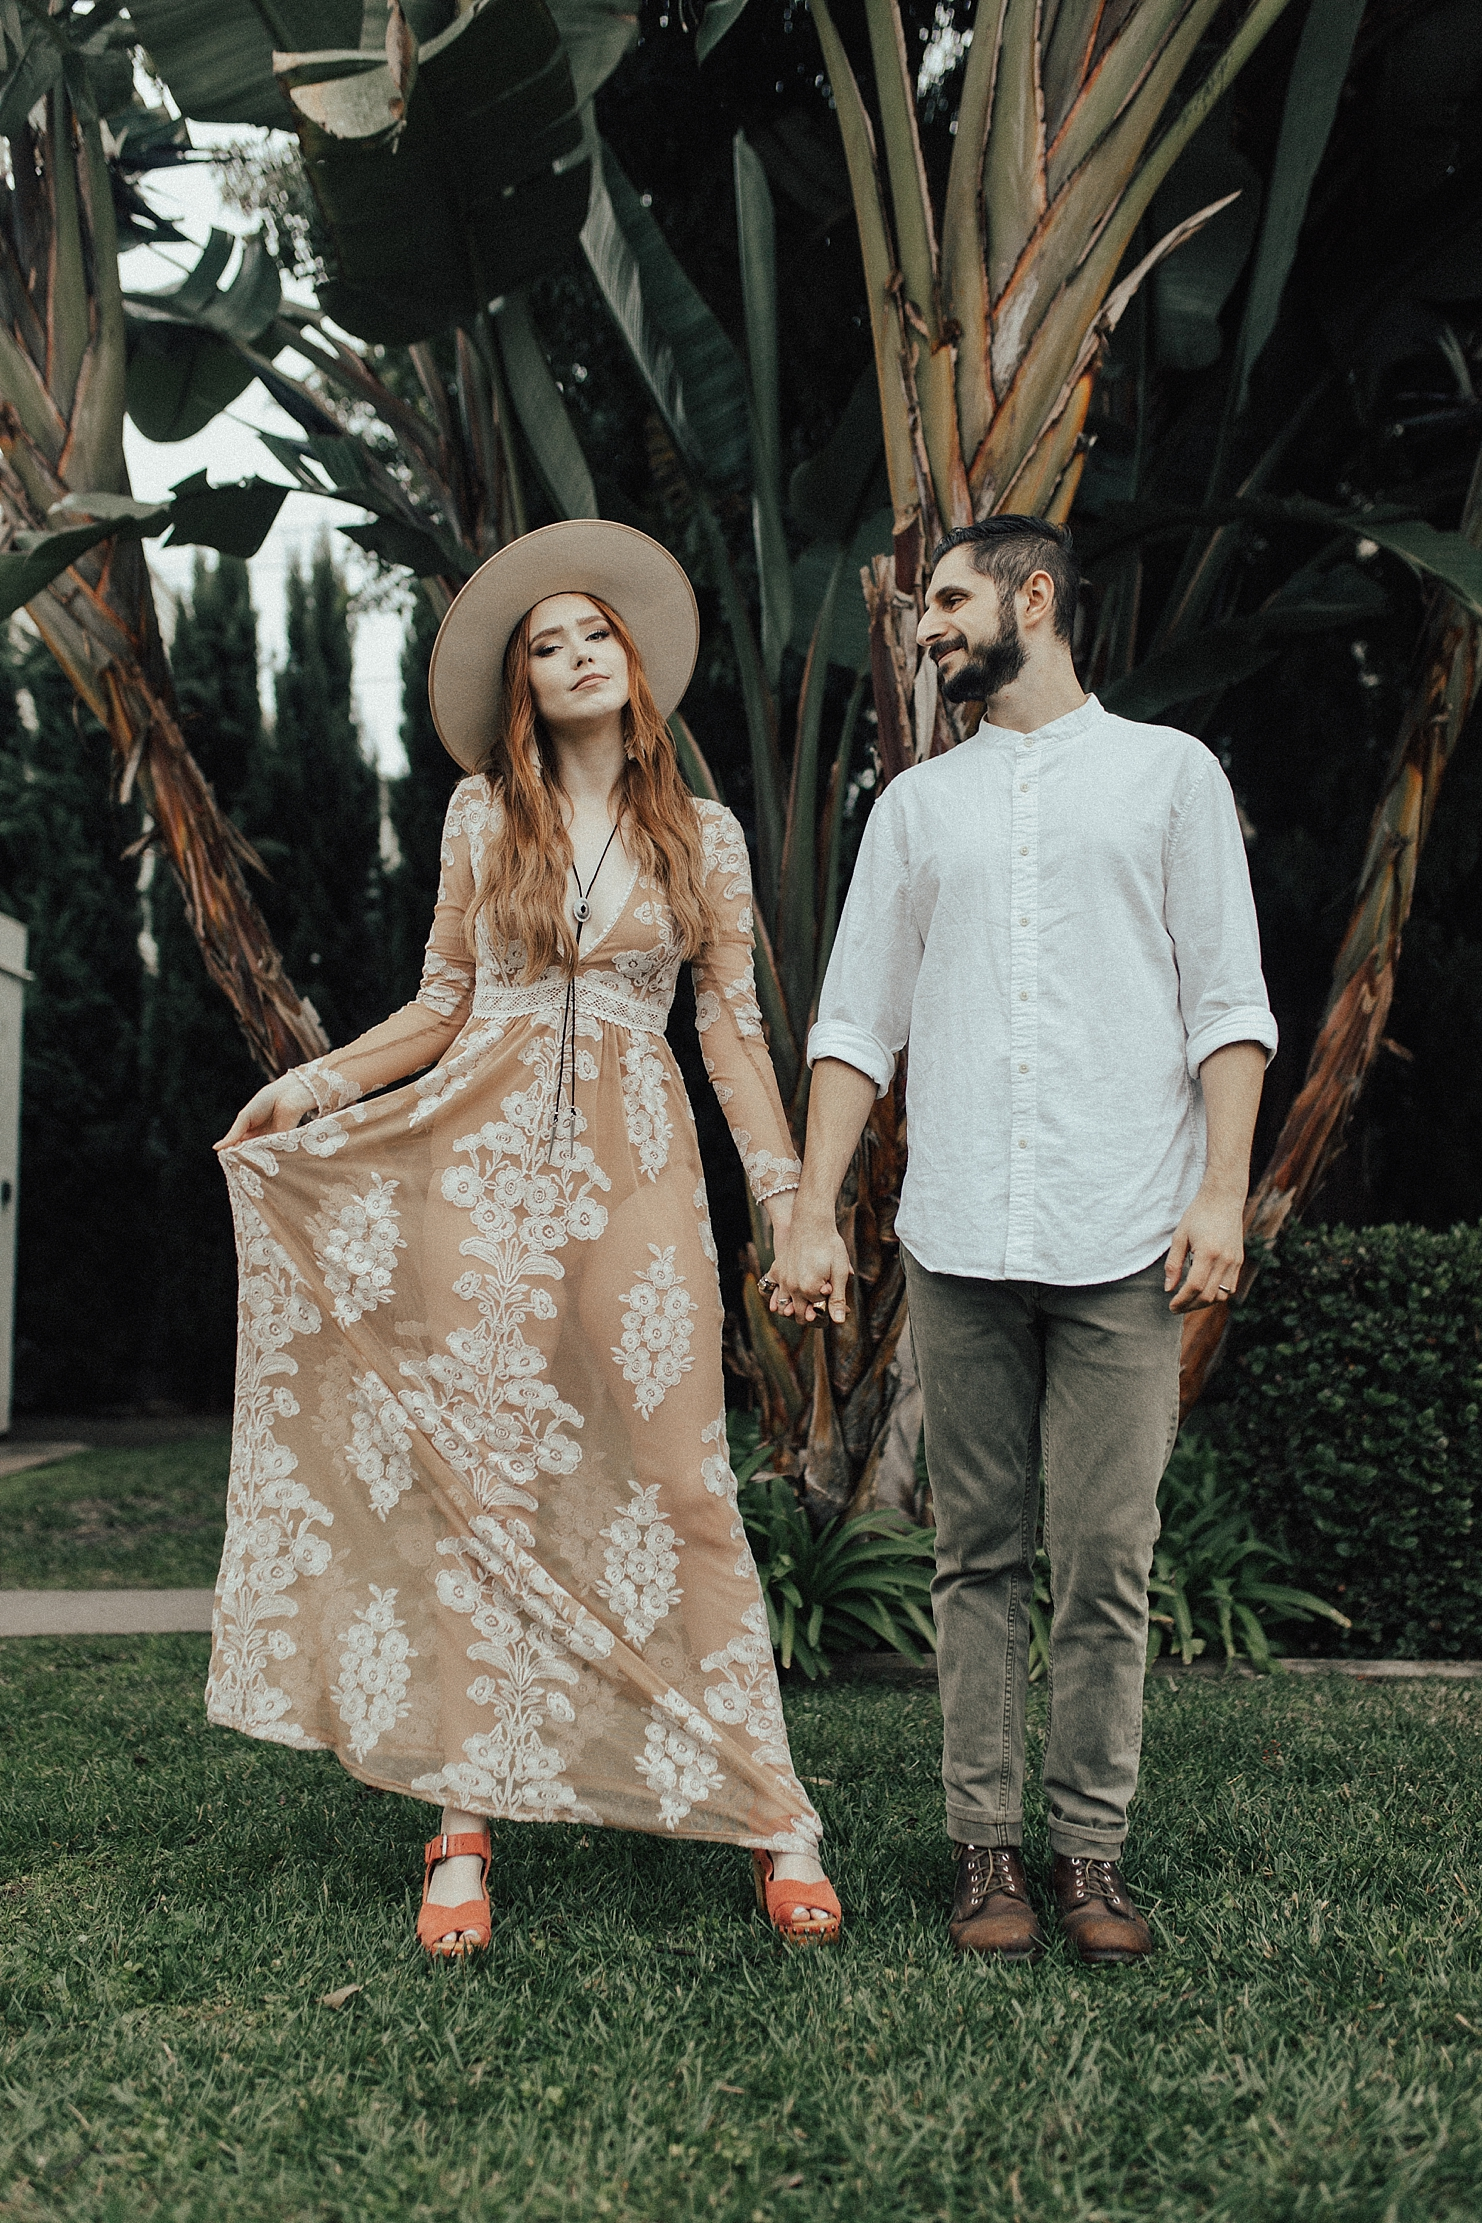 LONG BEACH ELOPEMENT INDIE BRIDE BOHO LOS ANGELES PHOTOGRAPHER RACHEL WAKEFIELD LA ELOPEMENT PHOTOGRAPHER-99.jpg